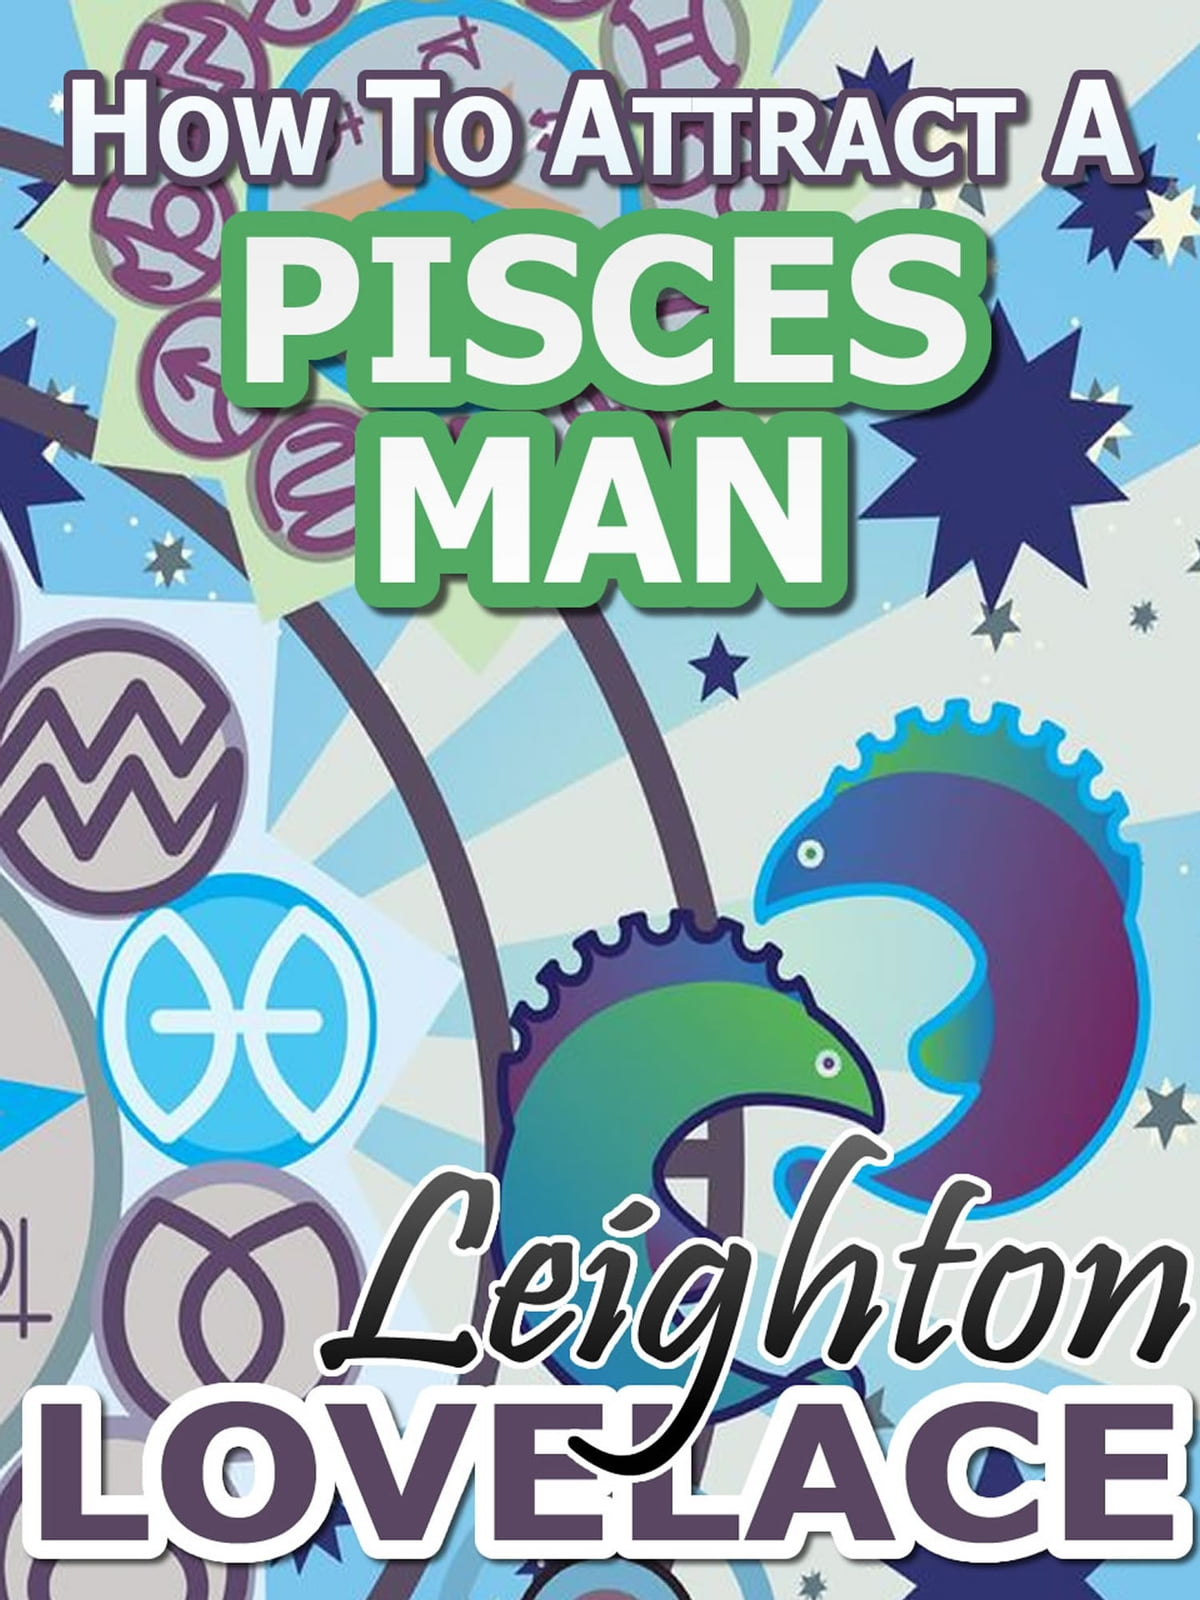 How To Attract A Pisces Man - The Astrology for Lovers Guide to  Understanding Pisces Men, Horoscope Compatibility Tips and Much More ebook  by Leighton